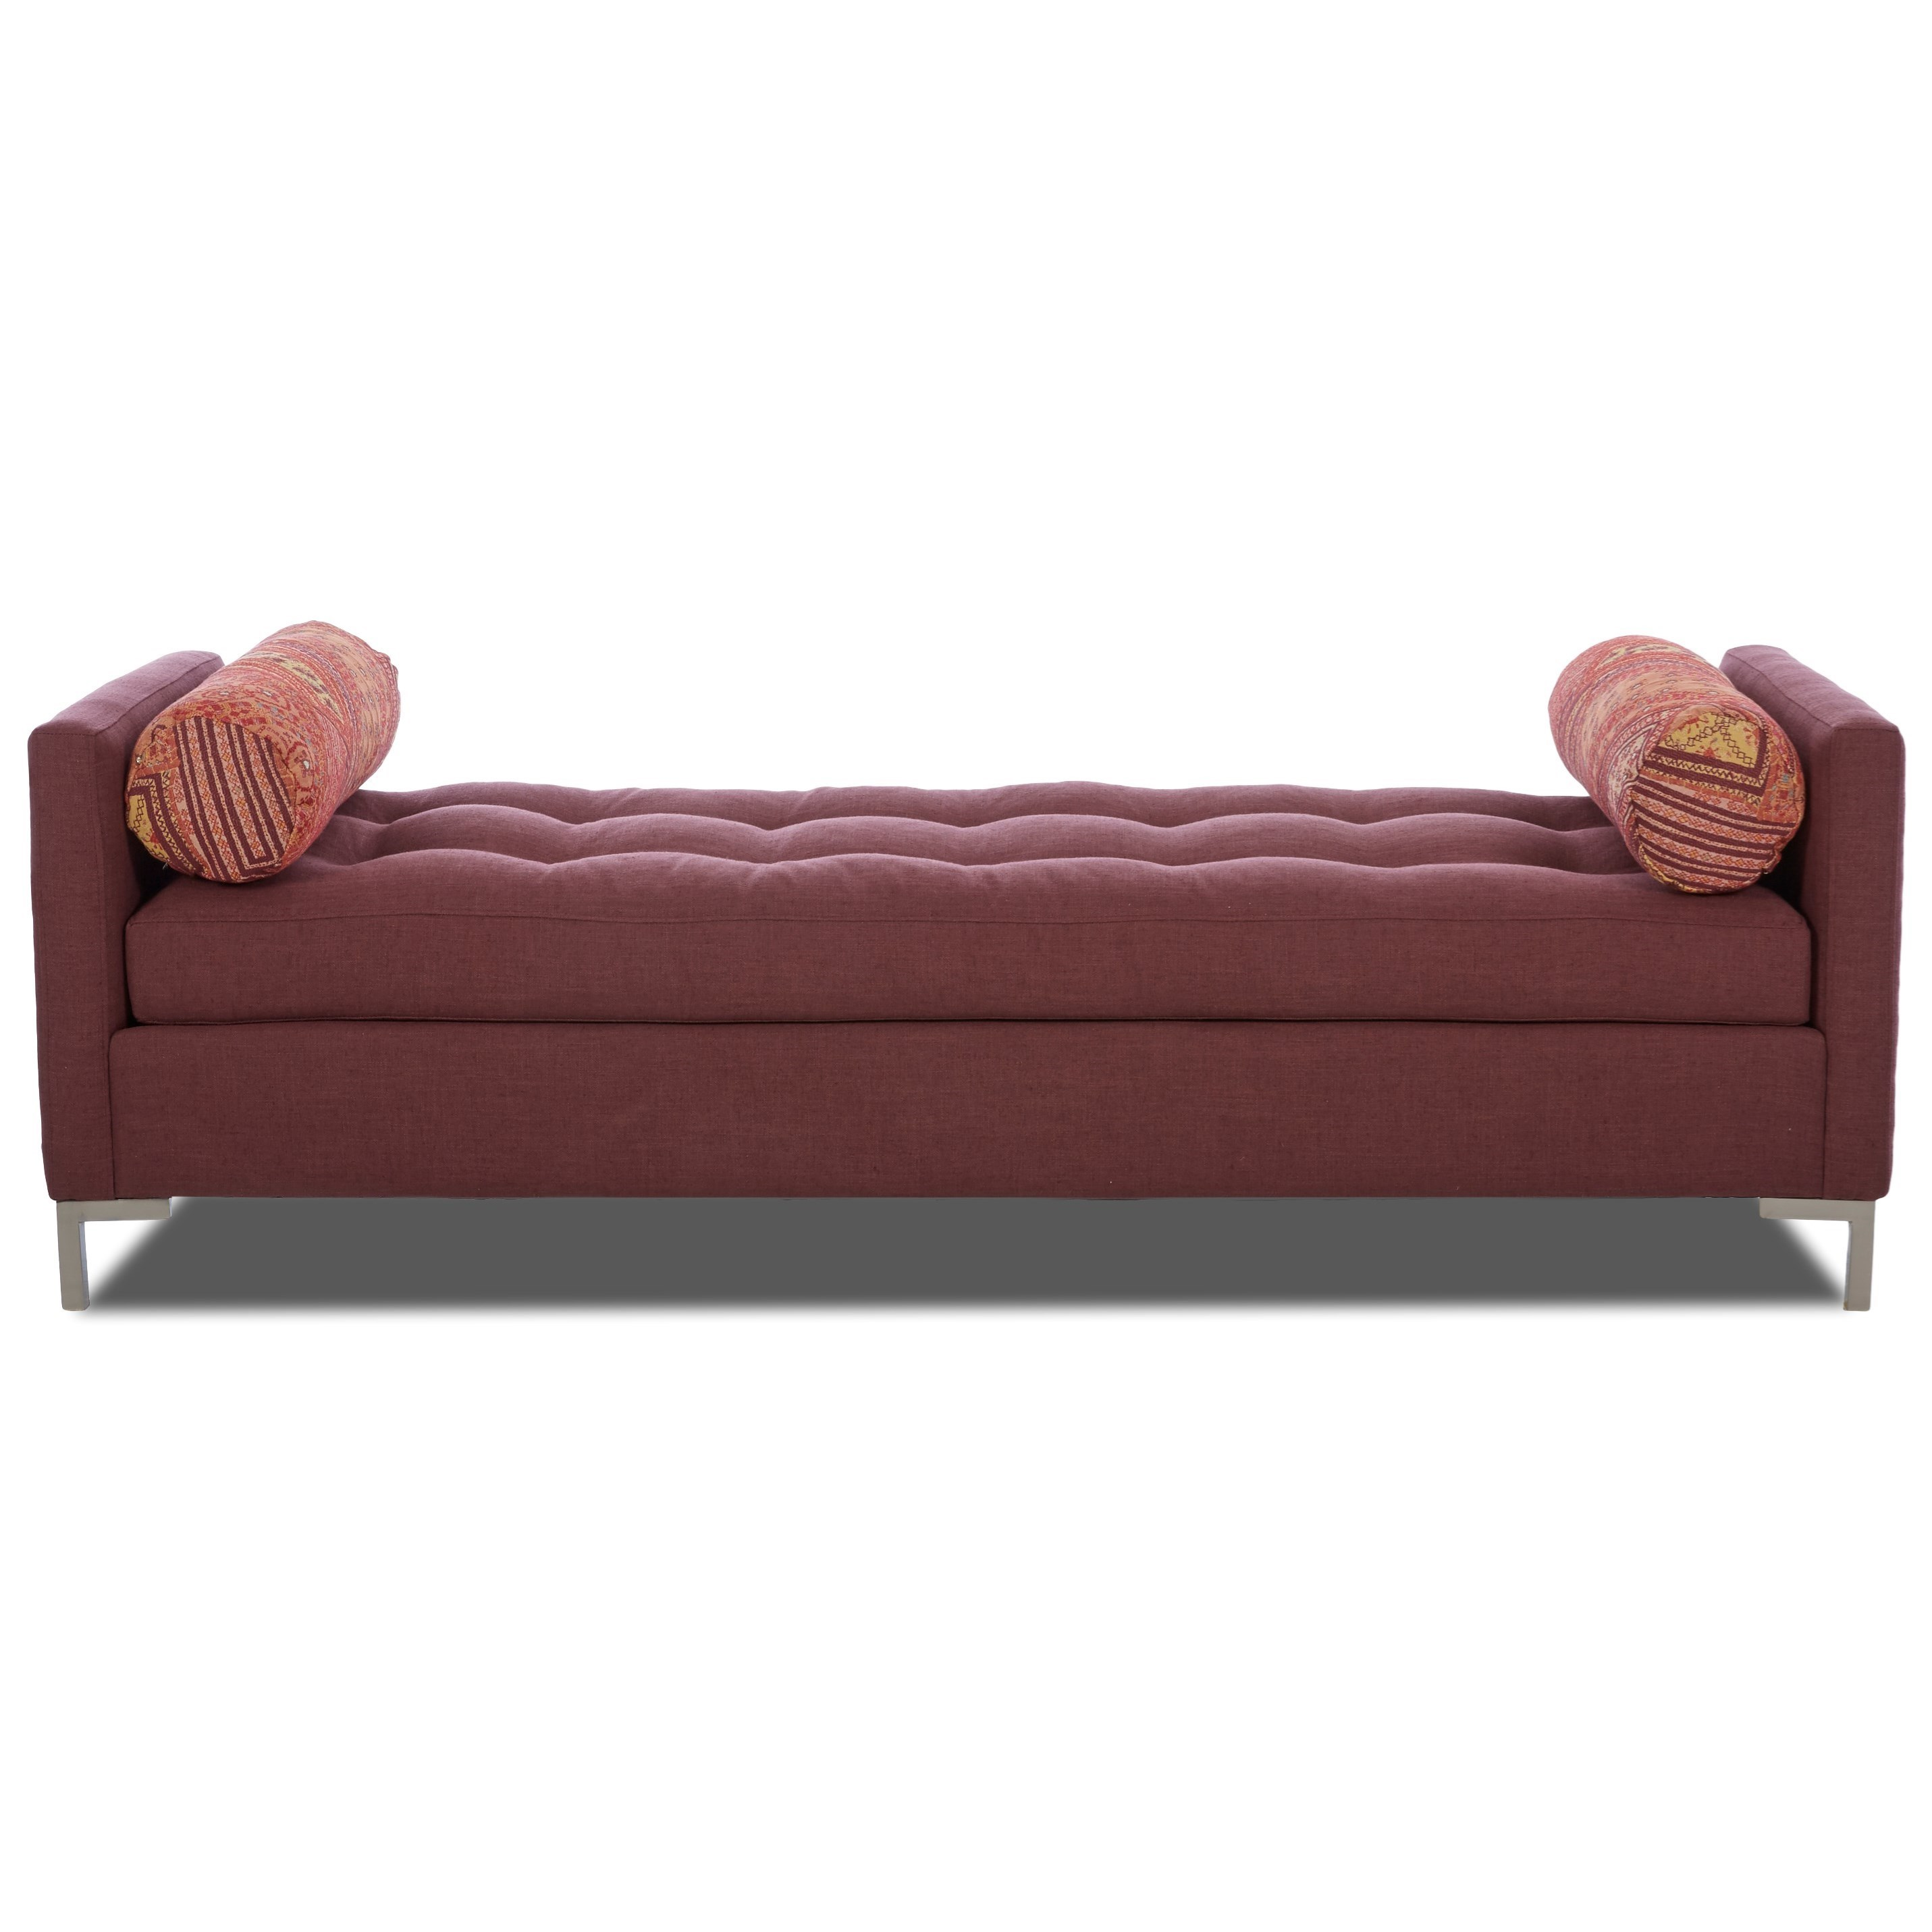 Klaussner Contemporary Accent Bench